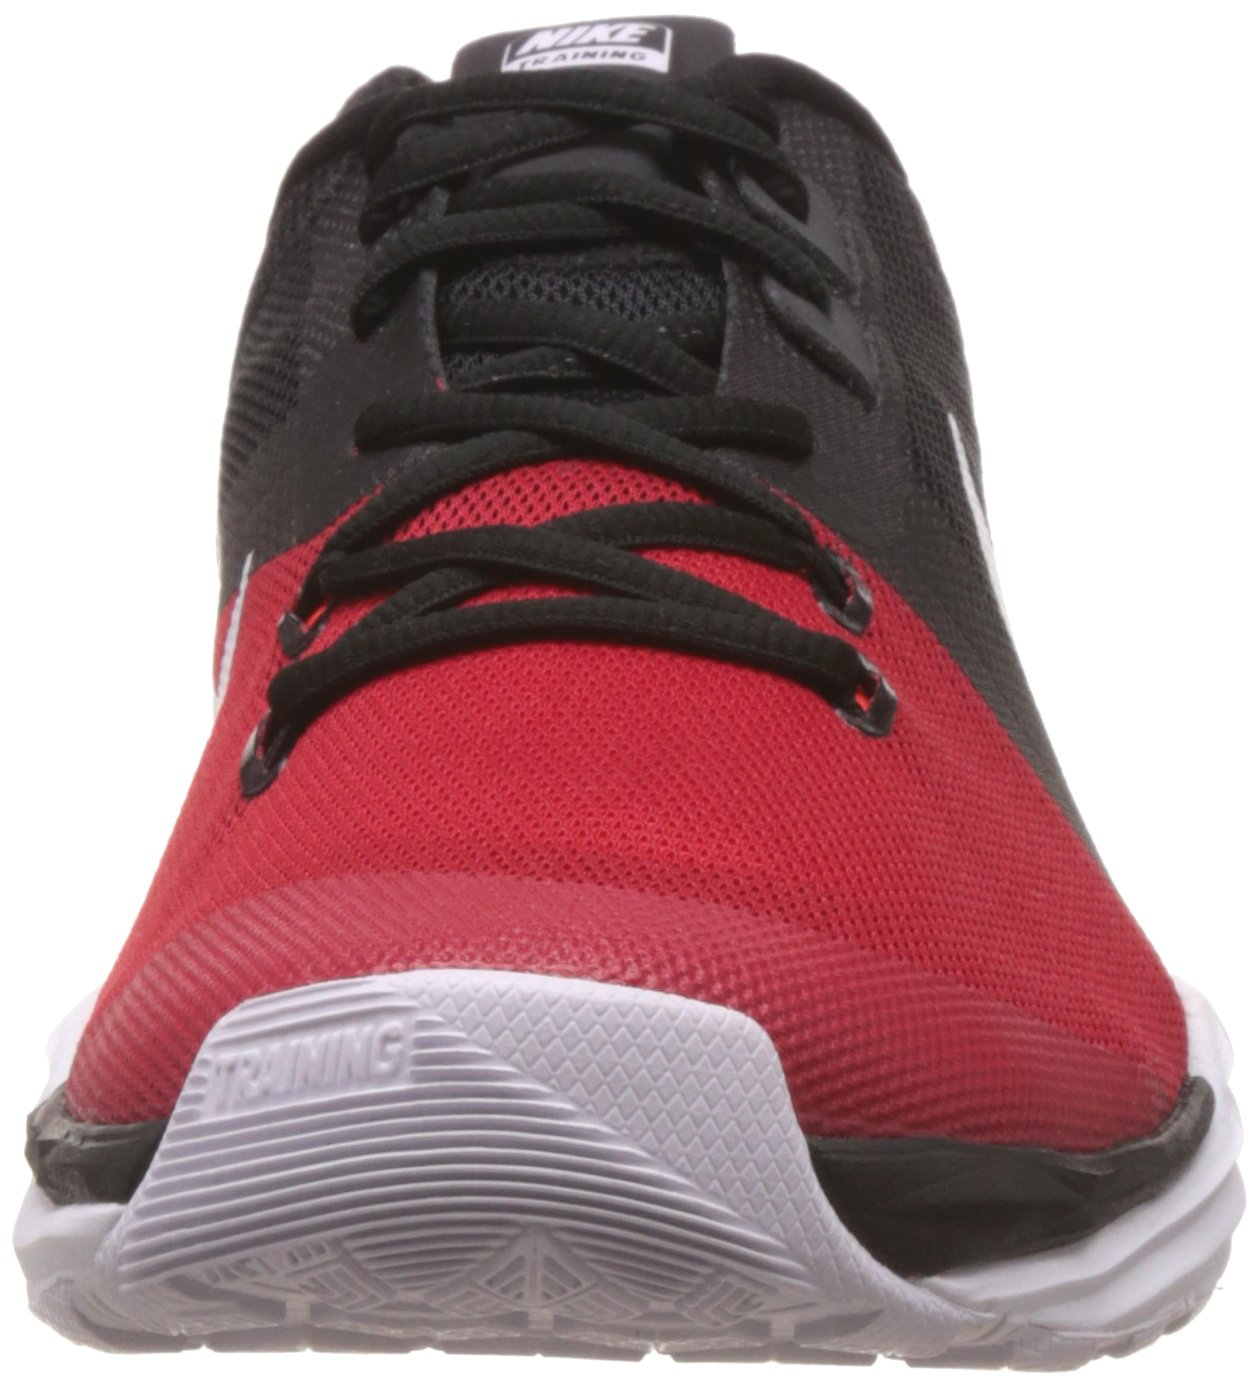 NIKE Men's Train Prime Iron DF Cross Trainer Shoes B014GMY1AW 6.5 D(M) US|Black/White/University Red/Anthracite